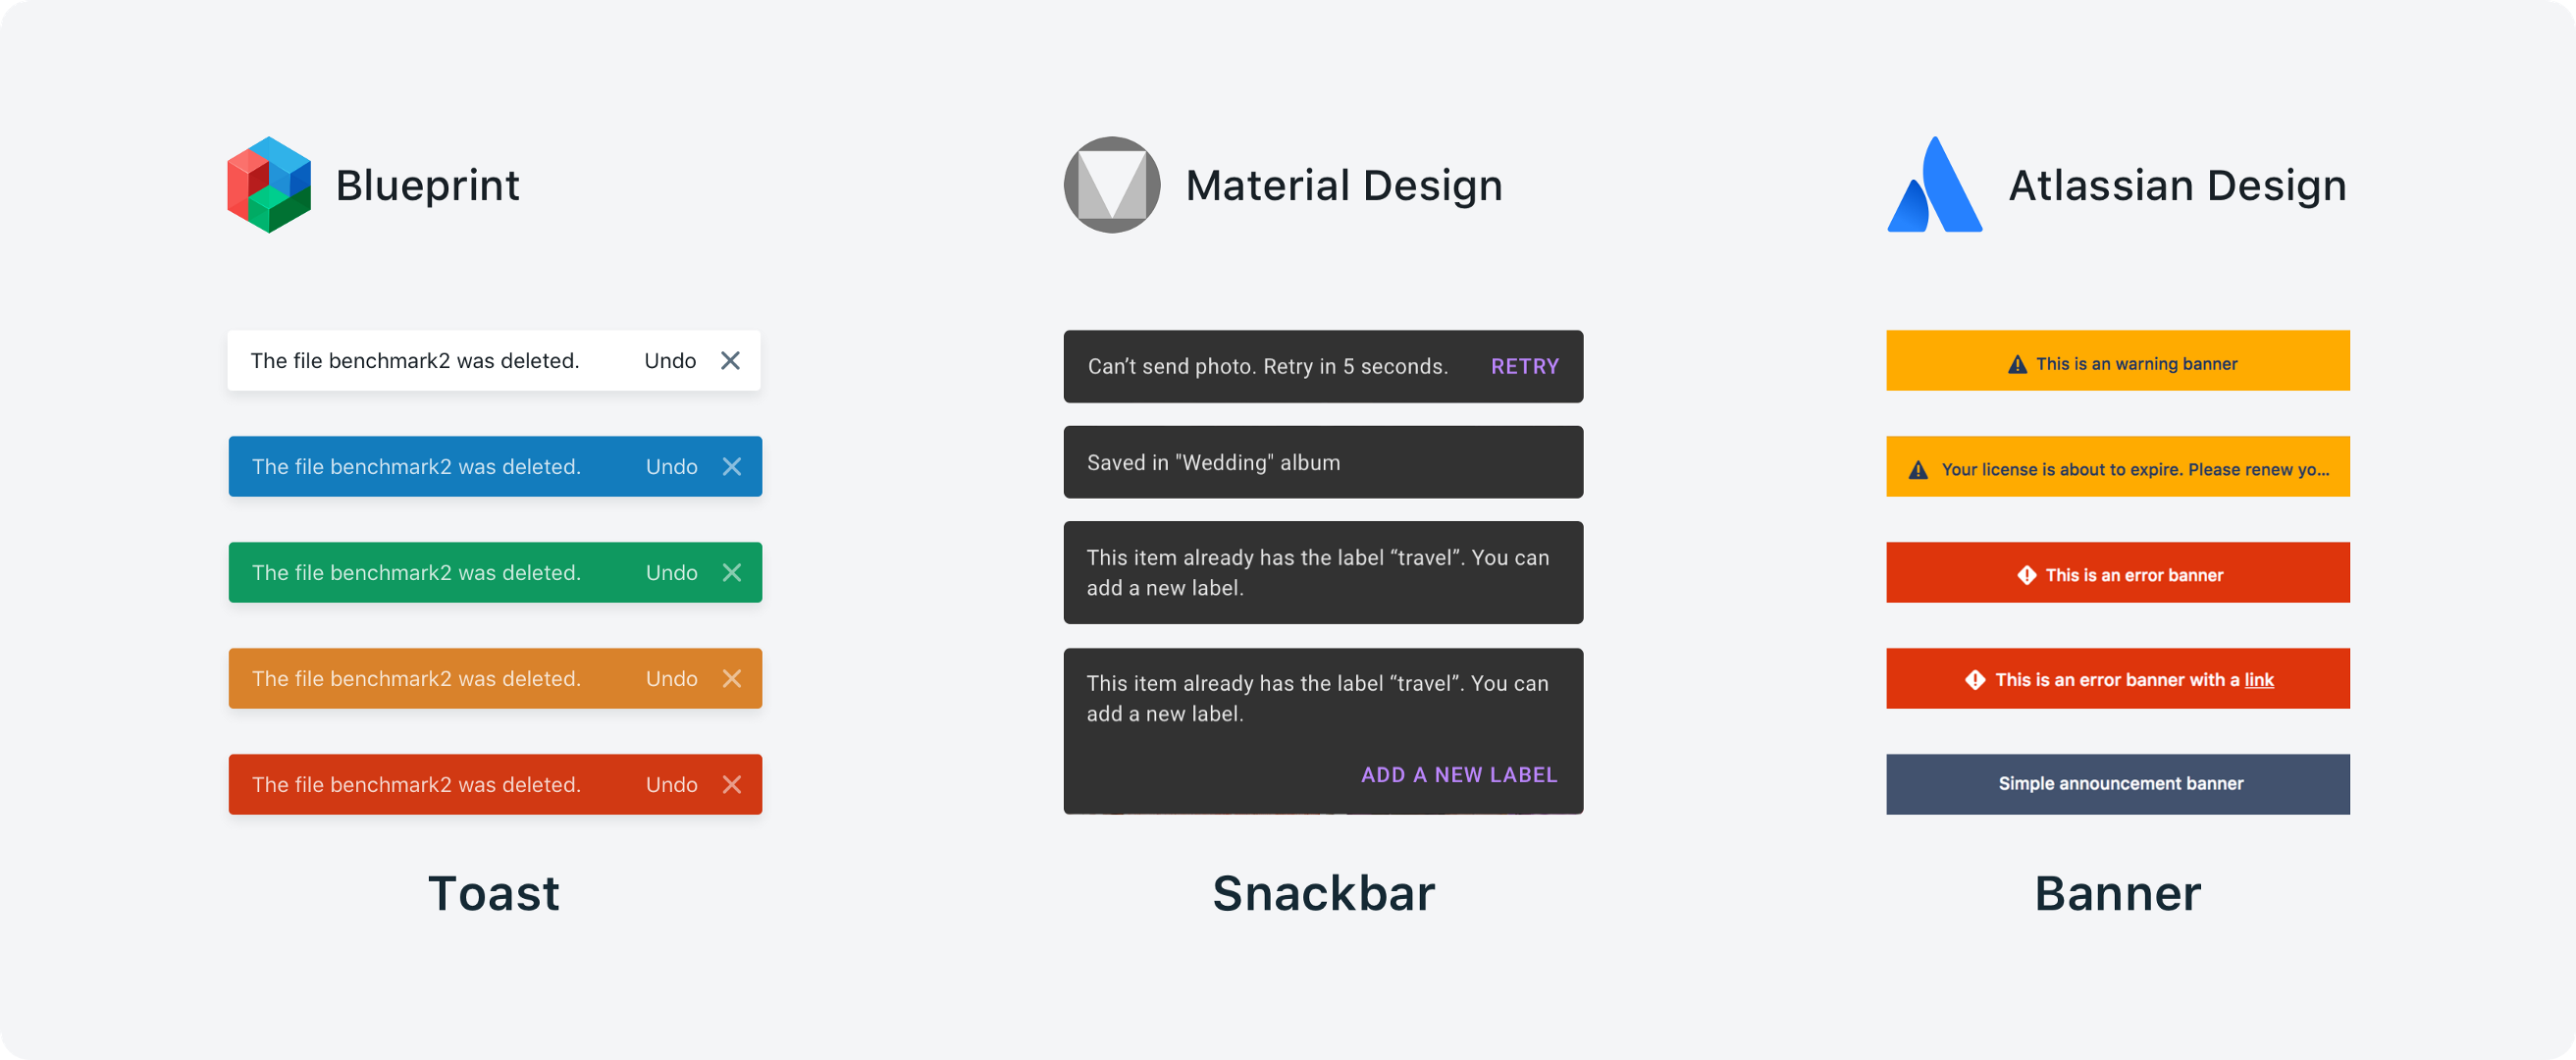 Toasts or snack bars? — designing organic notifications